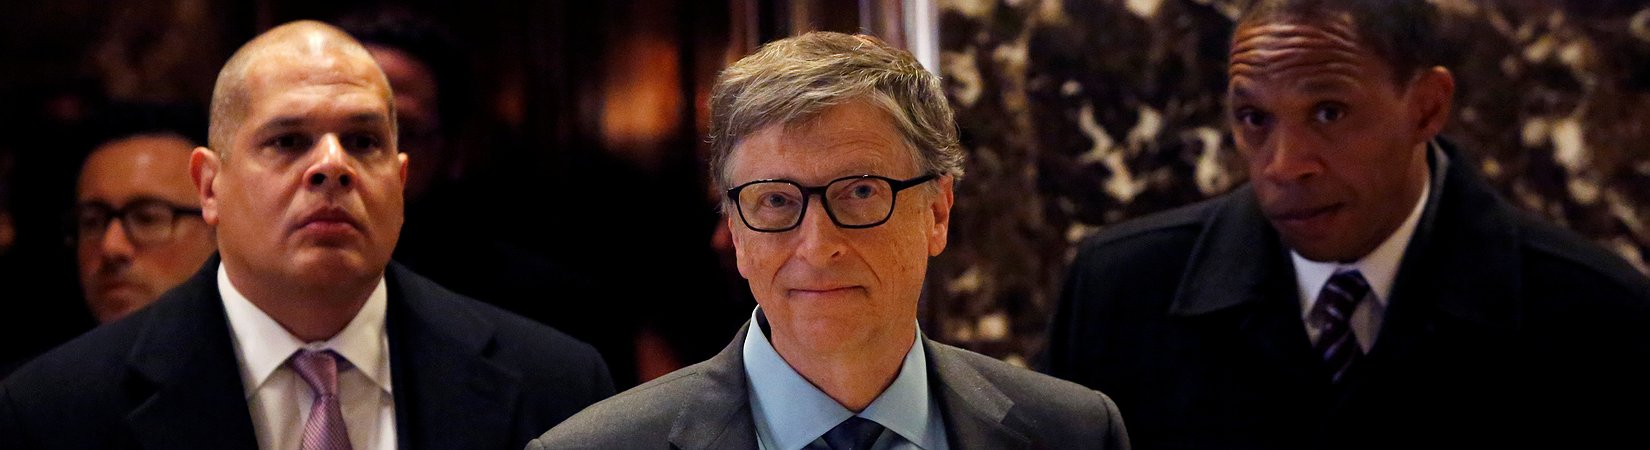 Bill Gates encontra-se com Donald Trump